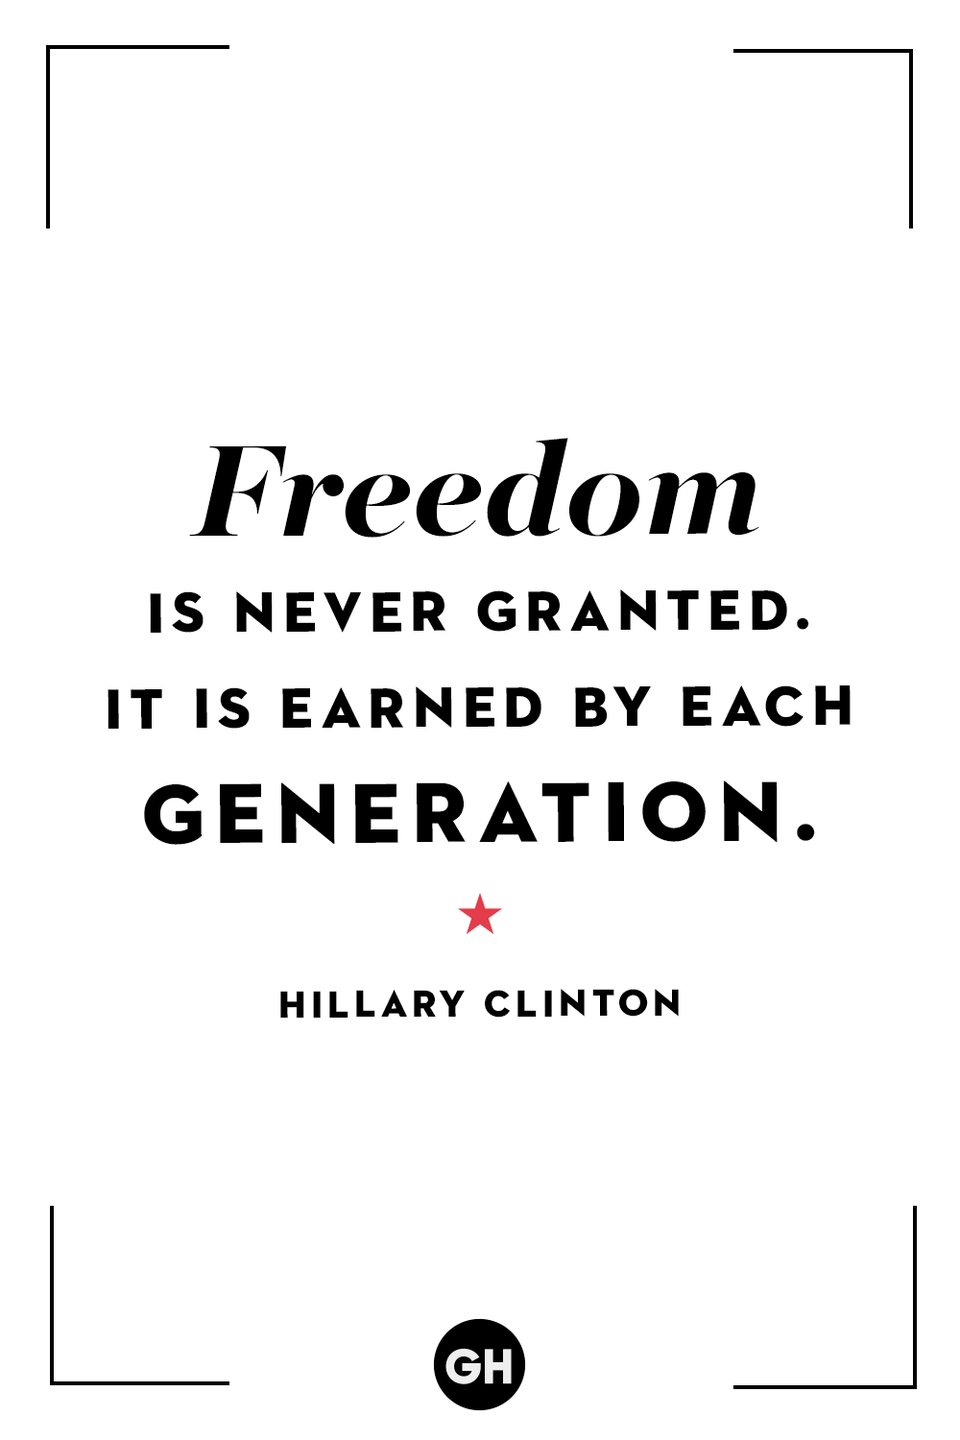 <p>Freedom is never granted. It is earned by each generation.</p>